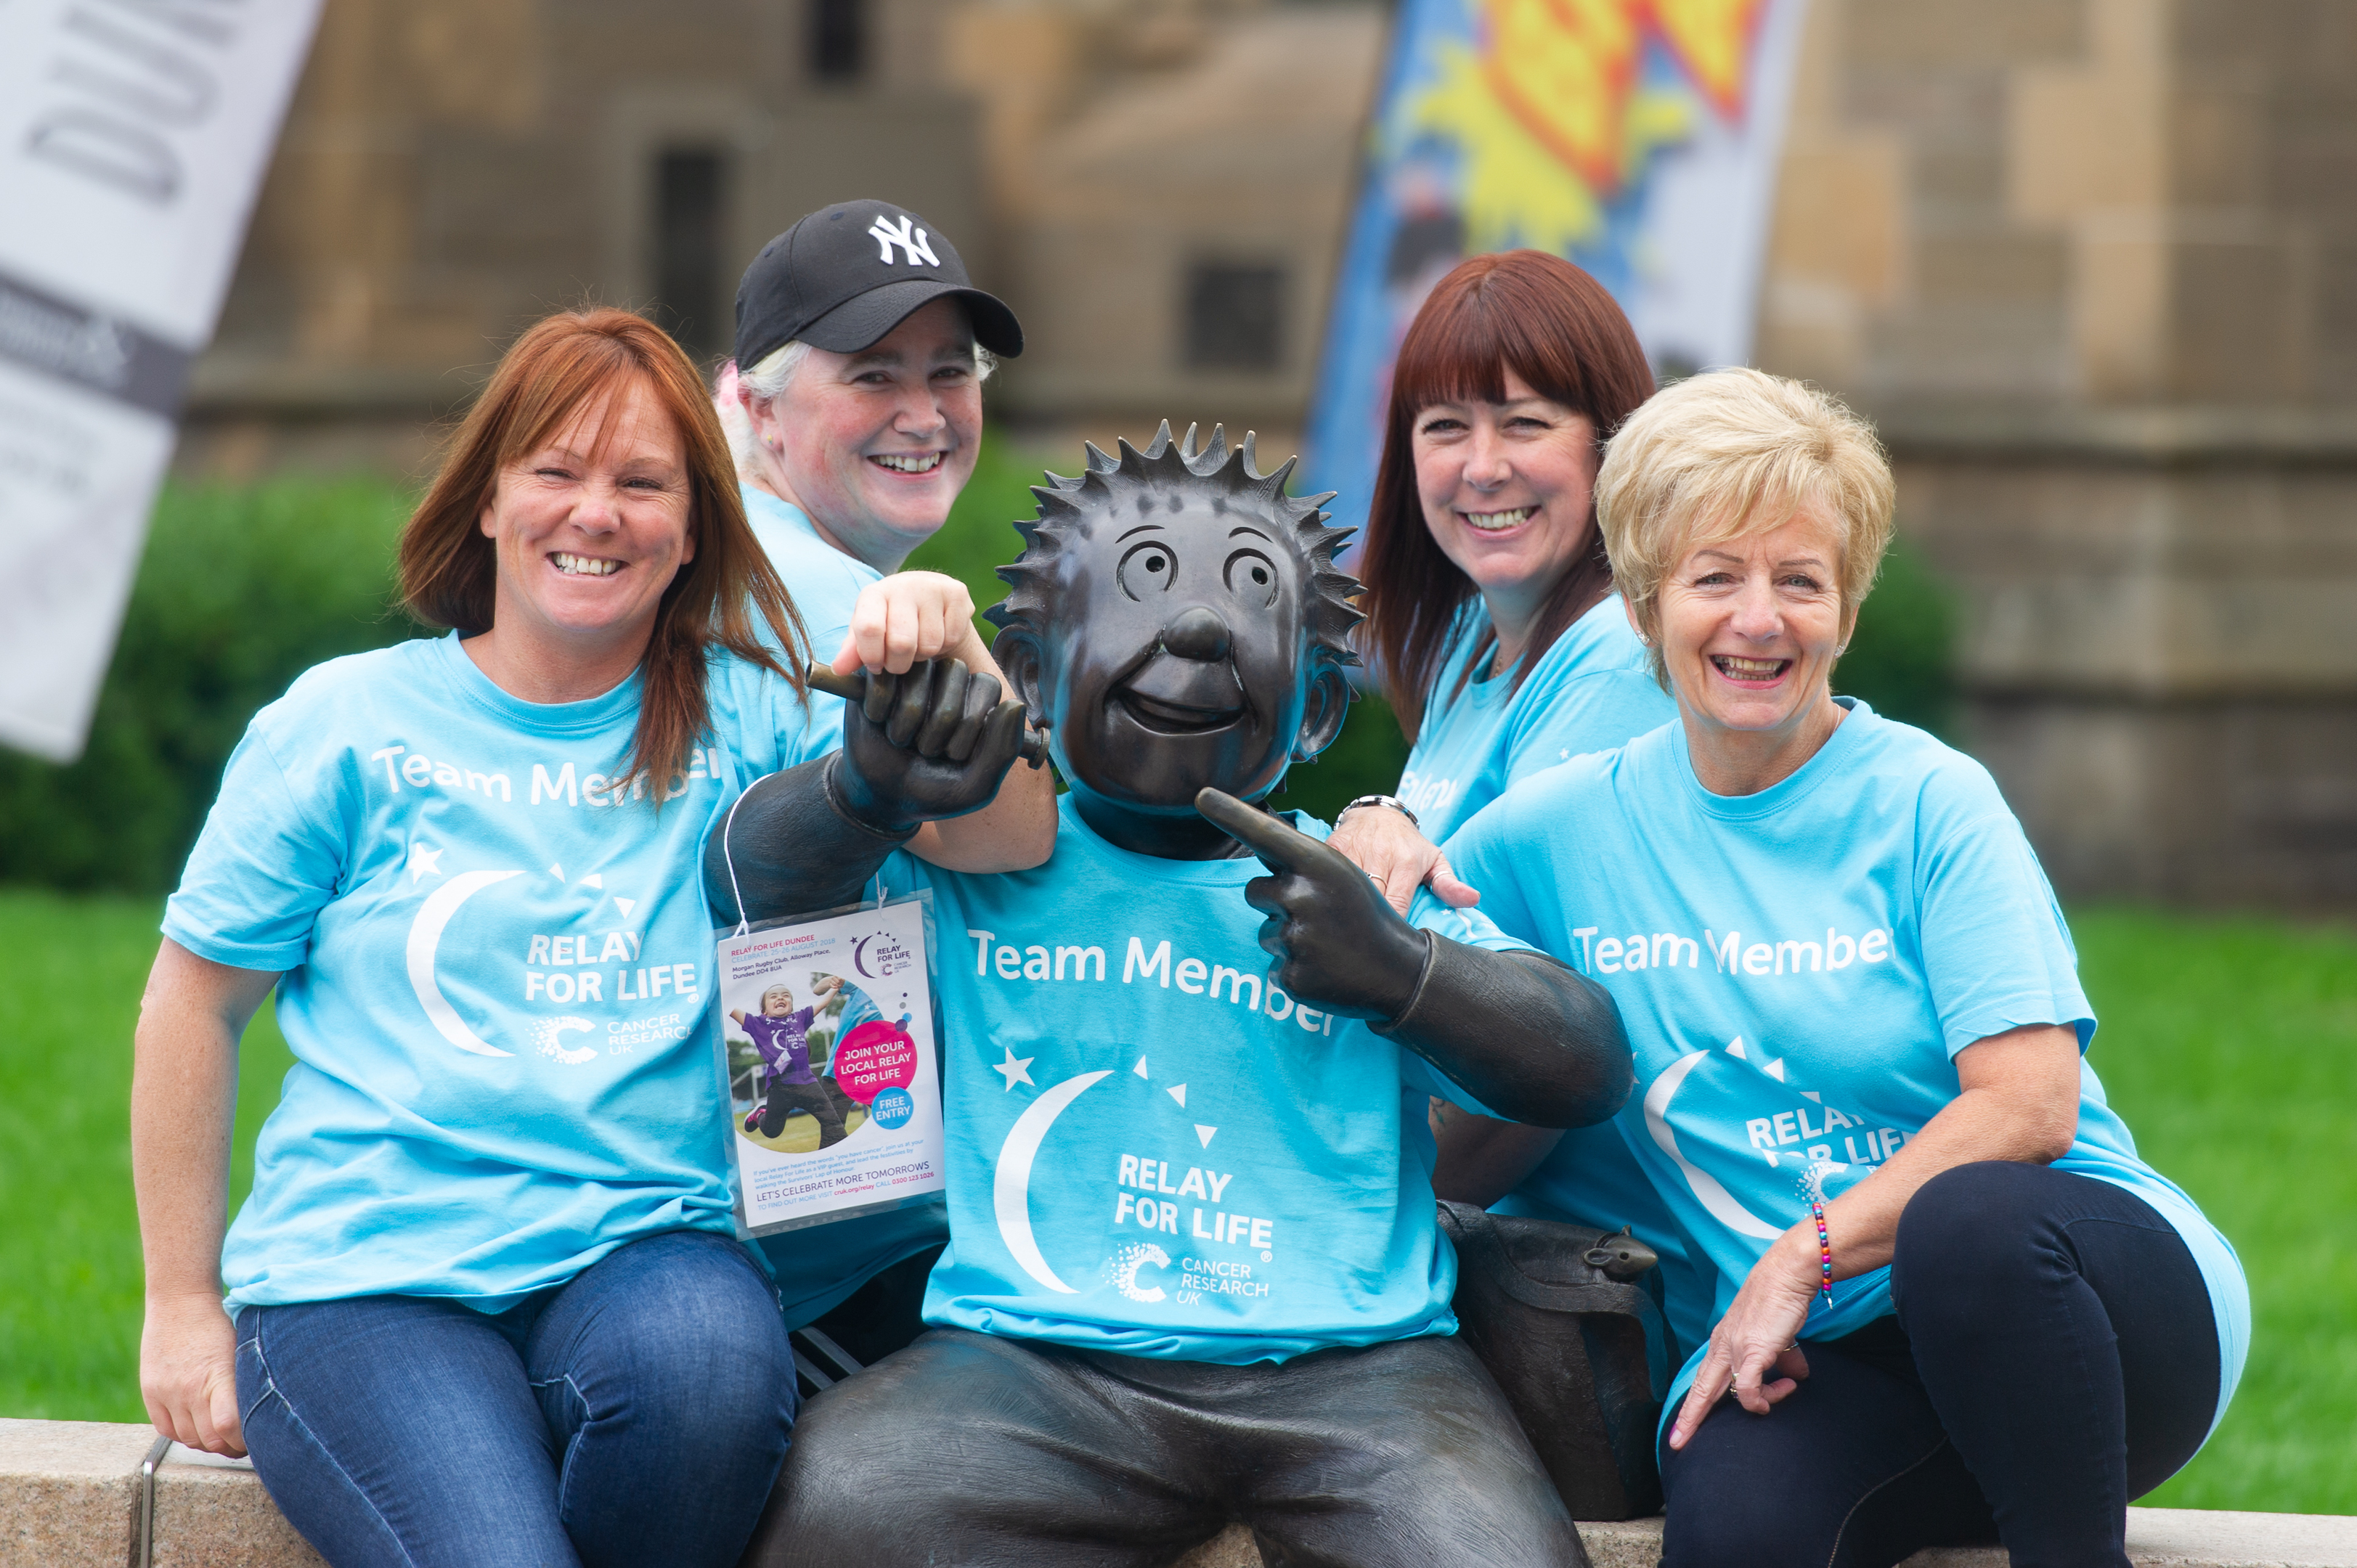 Some of the organisers of this years Relay for Life in Dundee - l to r - Leanda Innes, Moira Preston, Jacki Hughes and Joan Dyer, with Wullie on Albert Square.